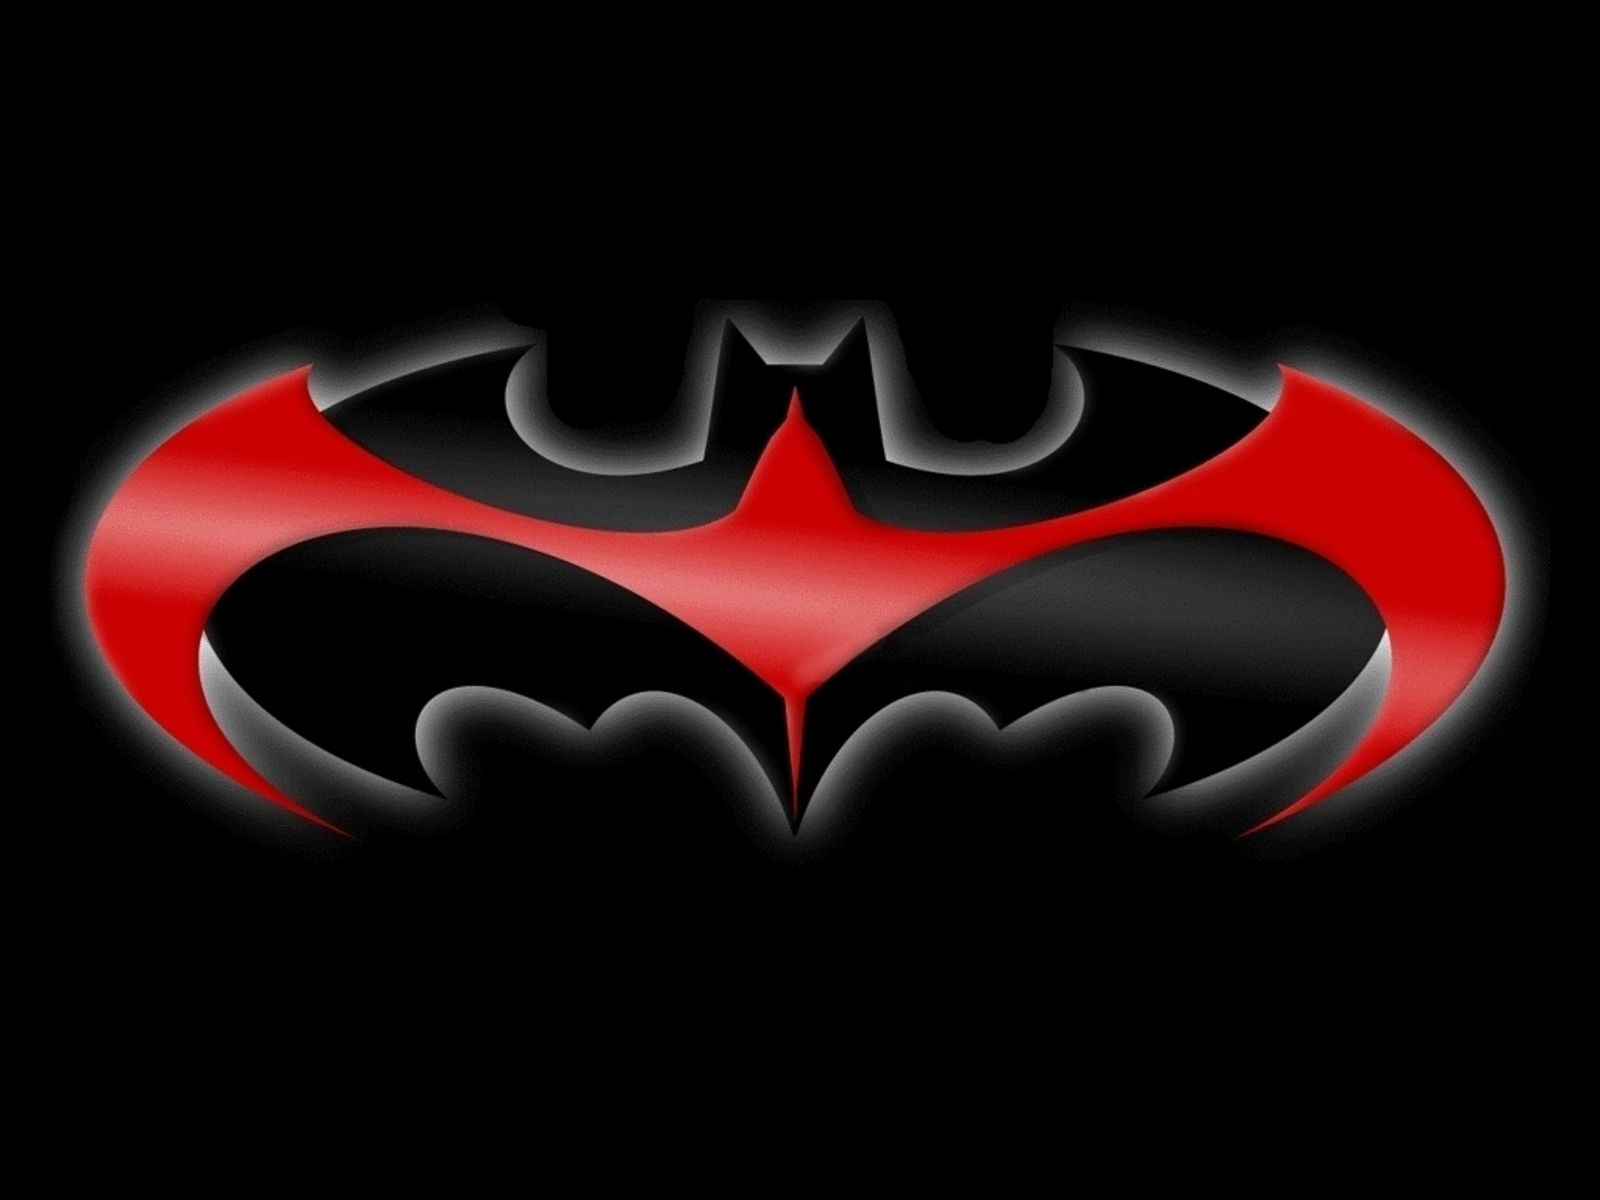 Batman robin logo superhero villains and comic logos Batman symbol